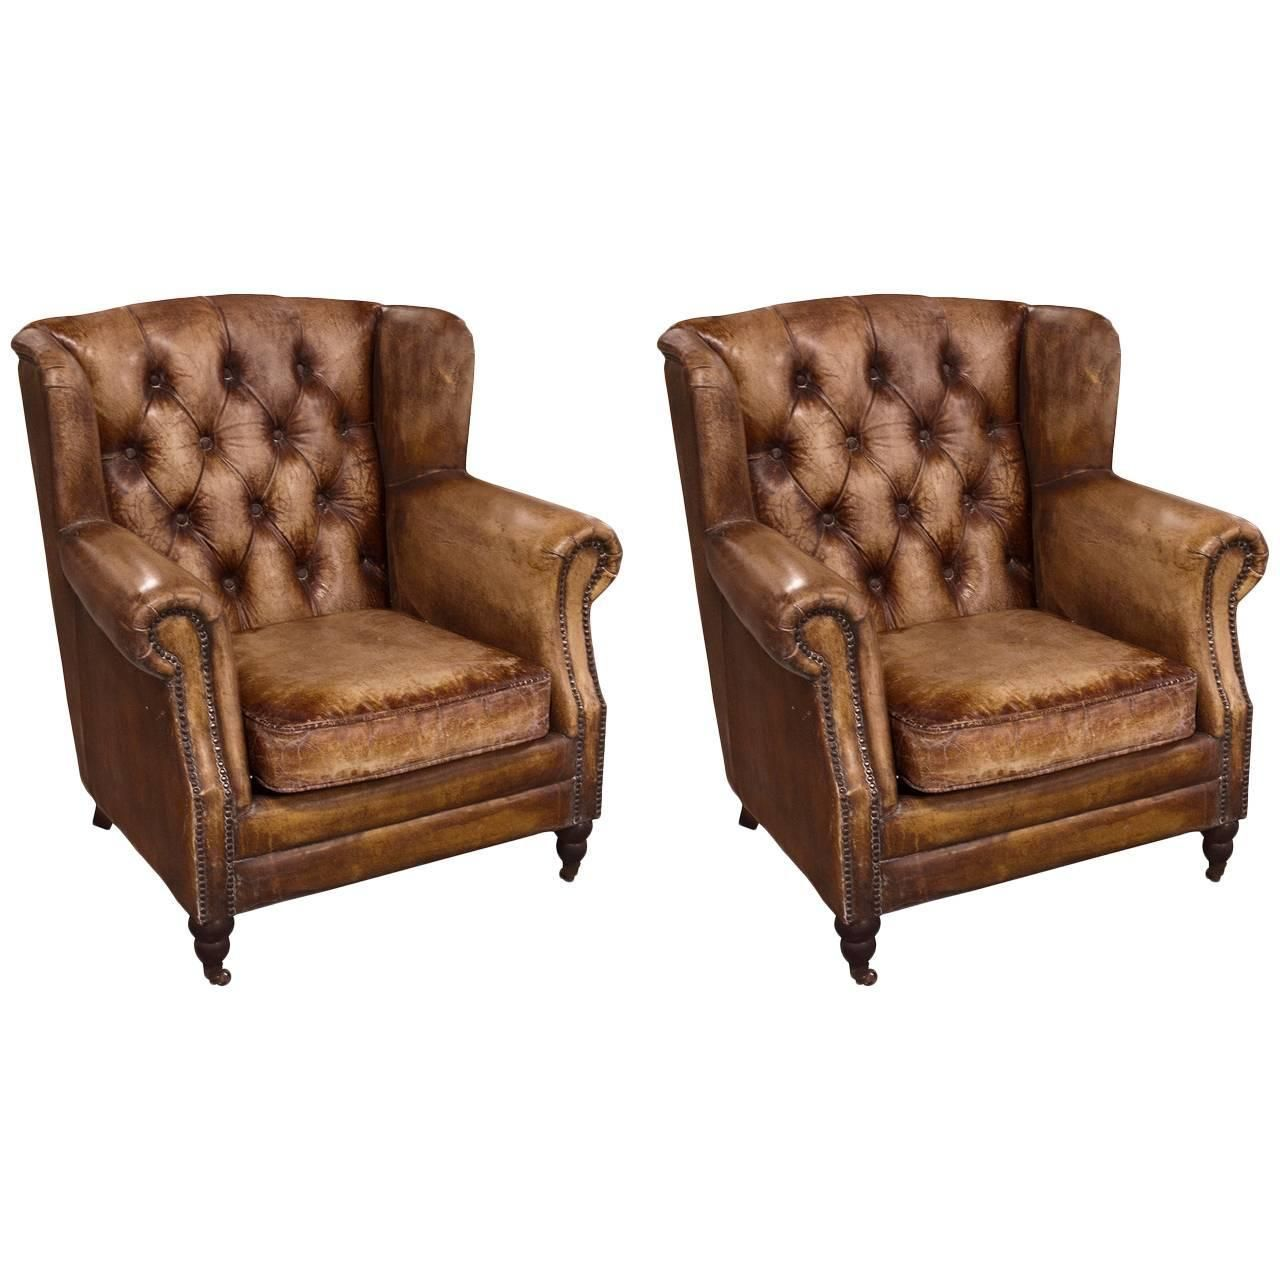 pair of english library chairs with distressed leather | modern